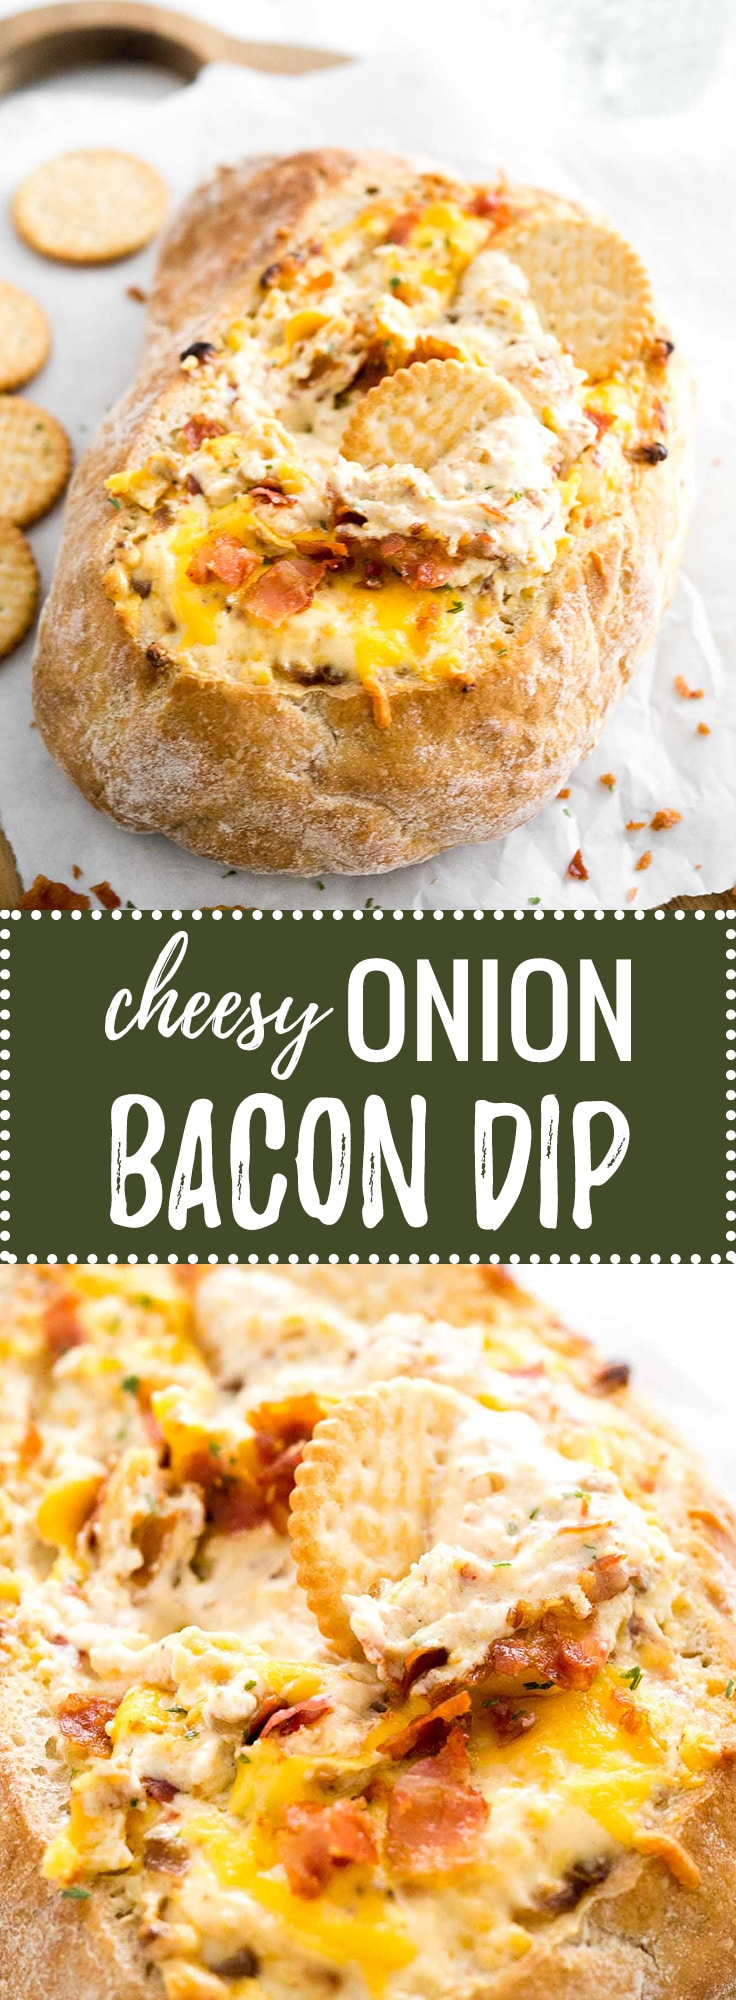 This Cheesy Bacon and Caramelized Onion Dip is sure to be a huge hit at your next party! A hot dip with onions, bacon, and cheese that's so fast to make.